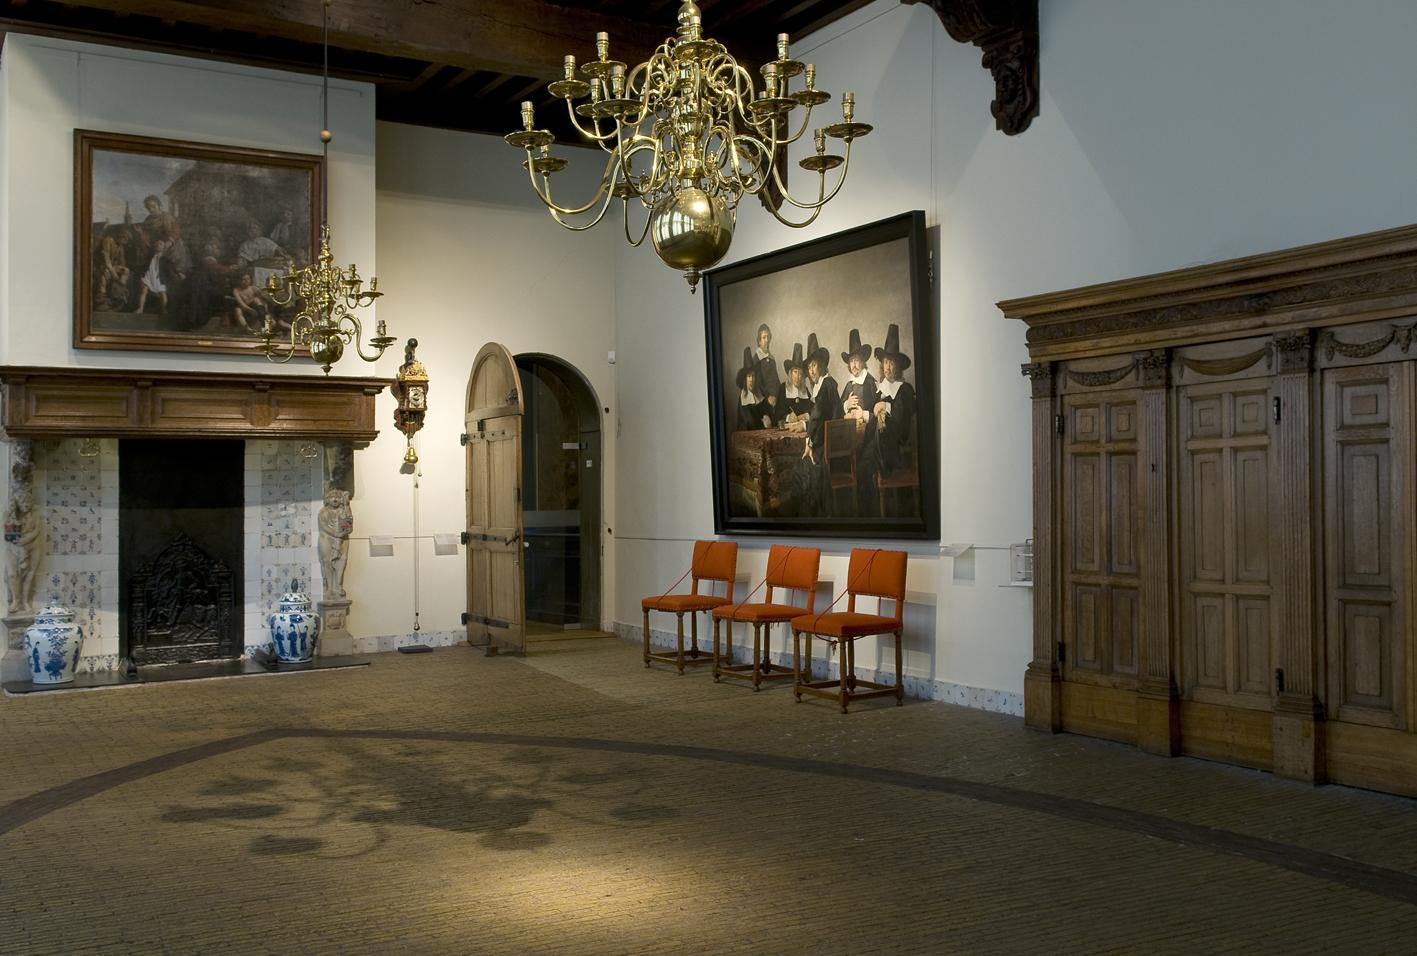 Foto Frans Hals Museum in Haarlem, Zien, Musea & galleries - #4